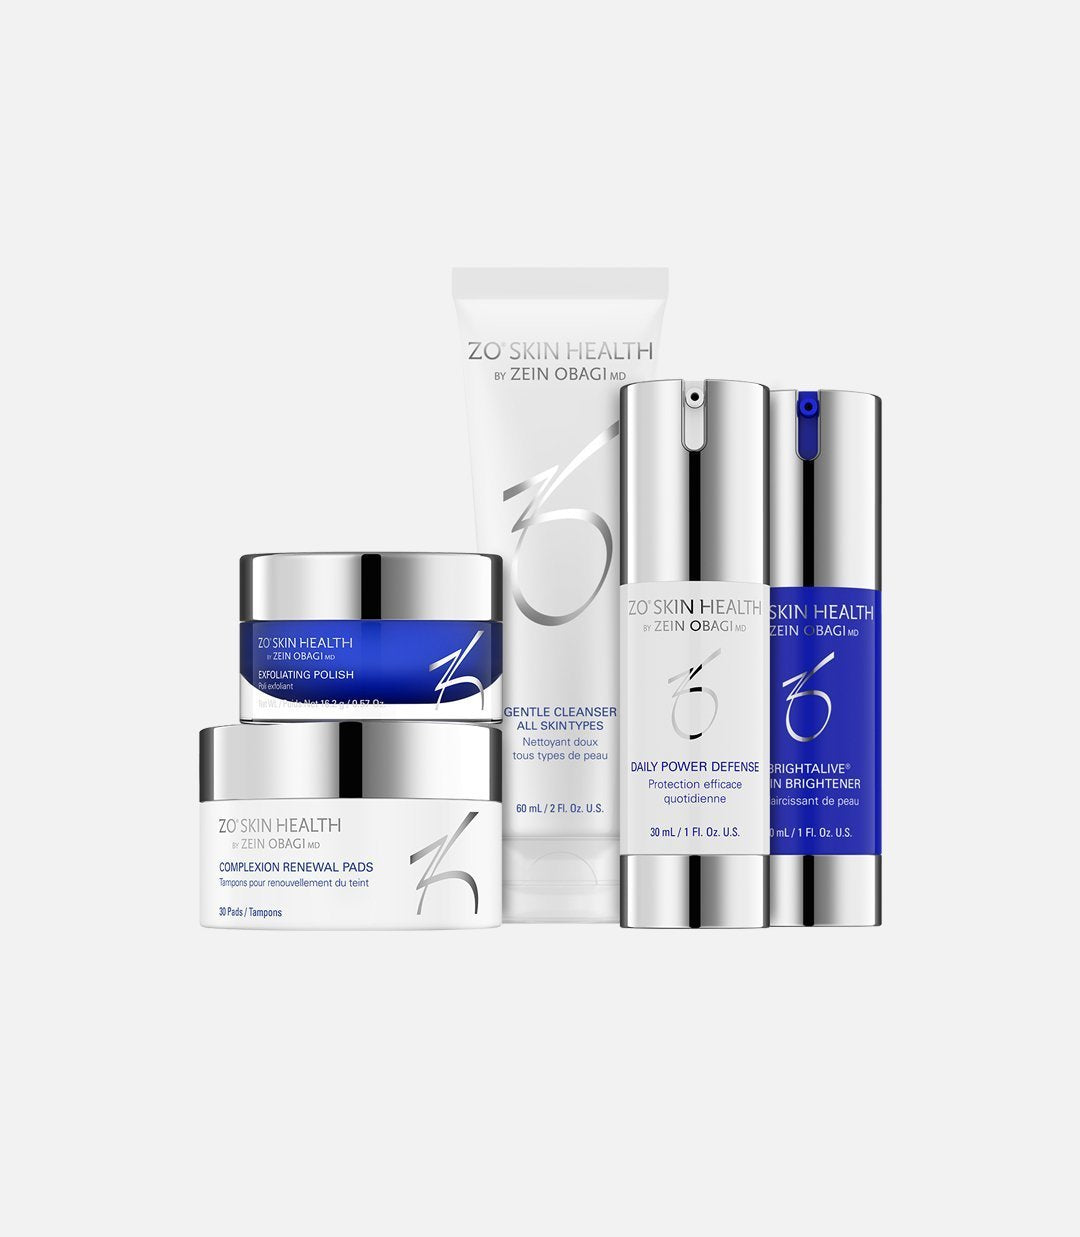 Skin Brightening Program - 5 Product Regimen - 2